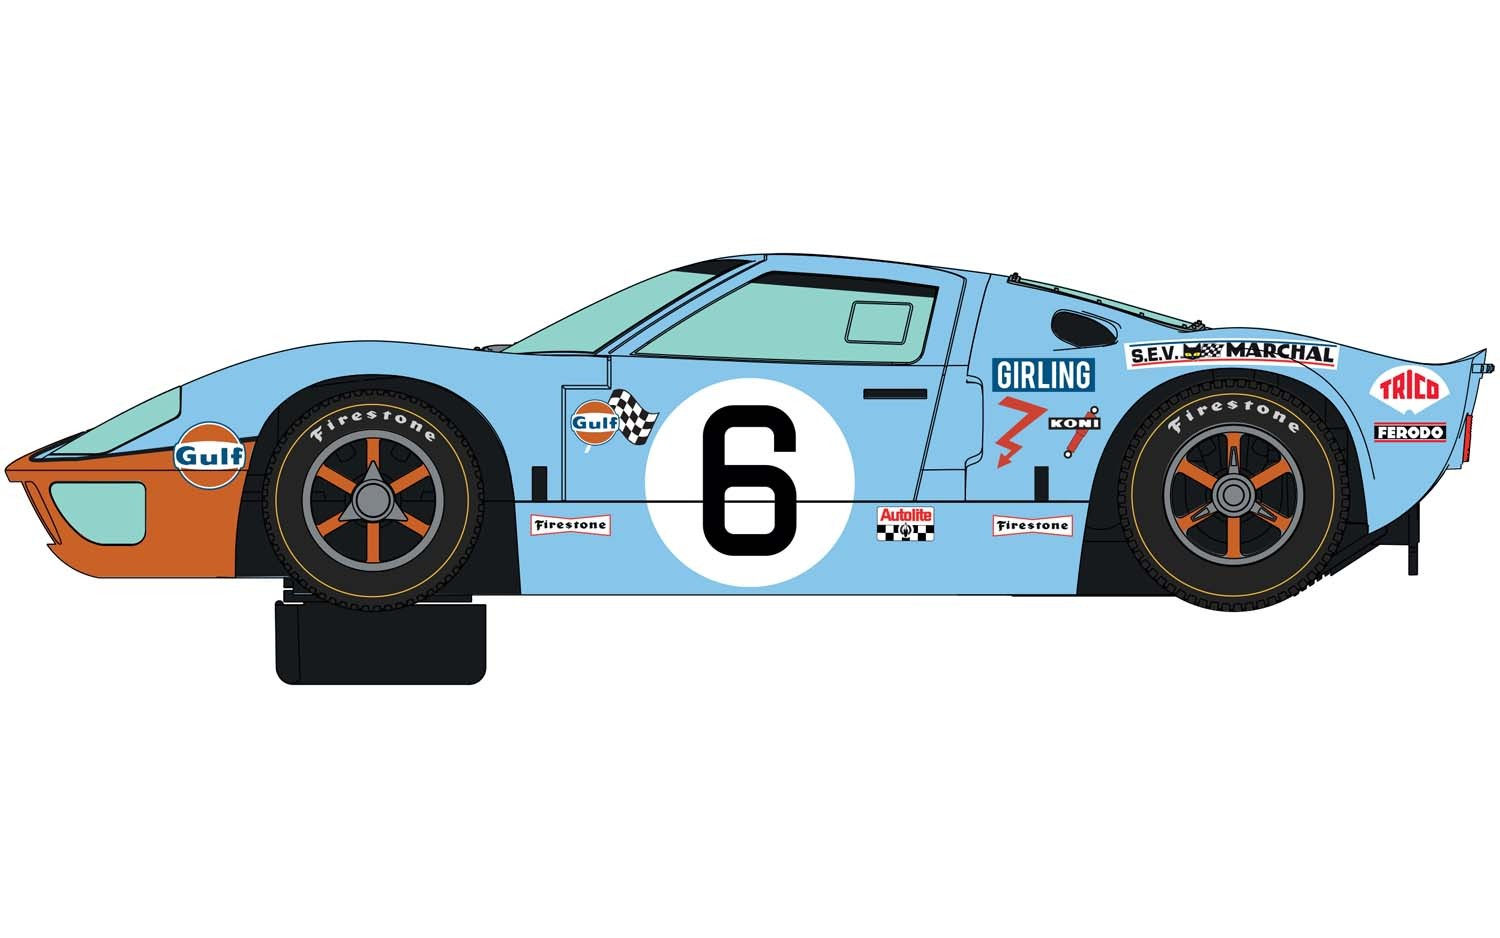 c4041a_1969-gulf-twin-pack_cars_gt40-gulf-no.6